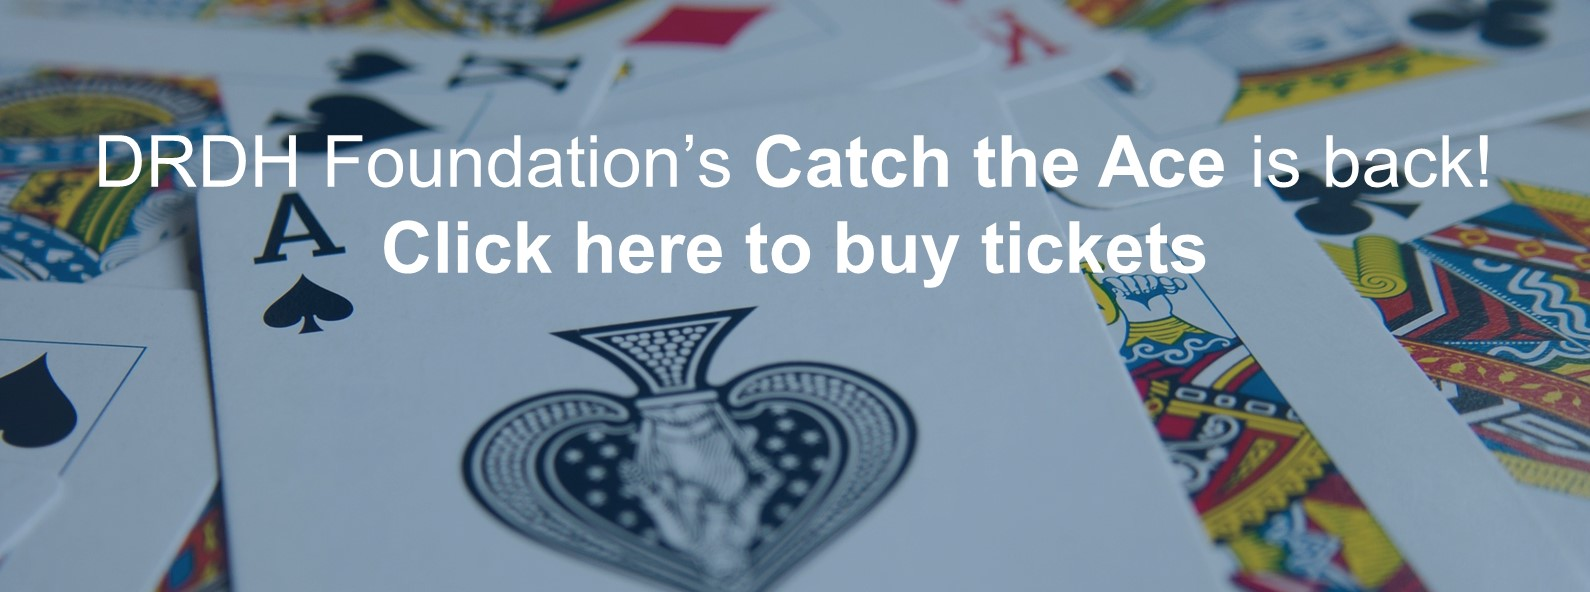 DRDH Foundation's Catch the Ace ticket link